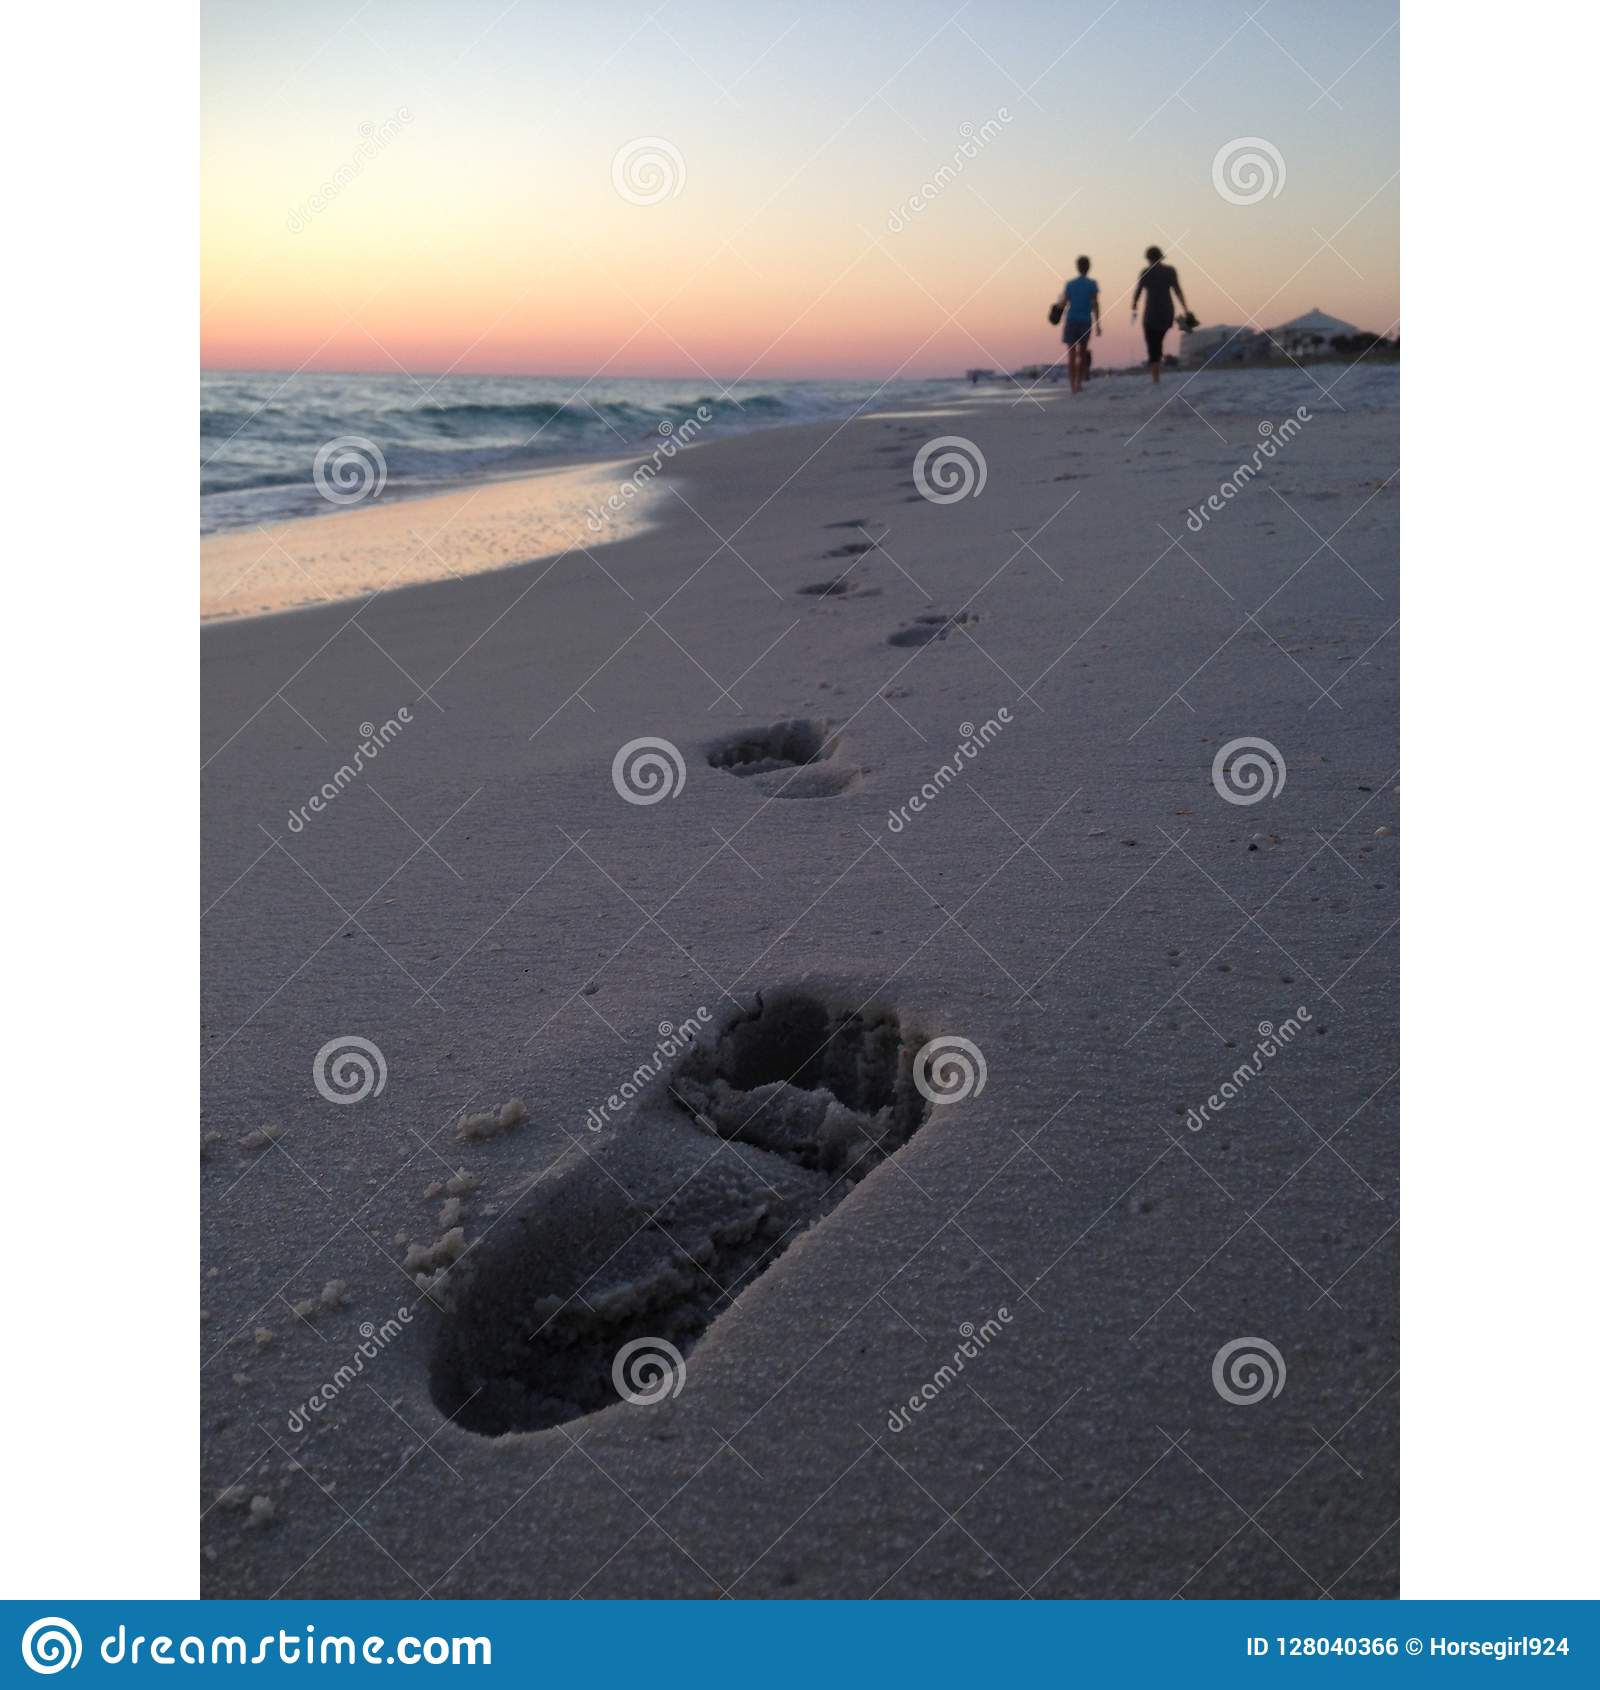 Florida Beach Sunset with People and Footprints in Sand